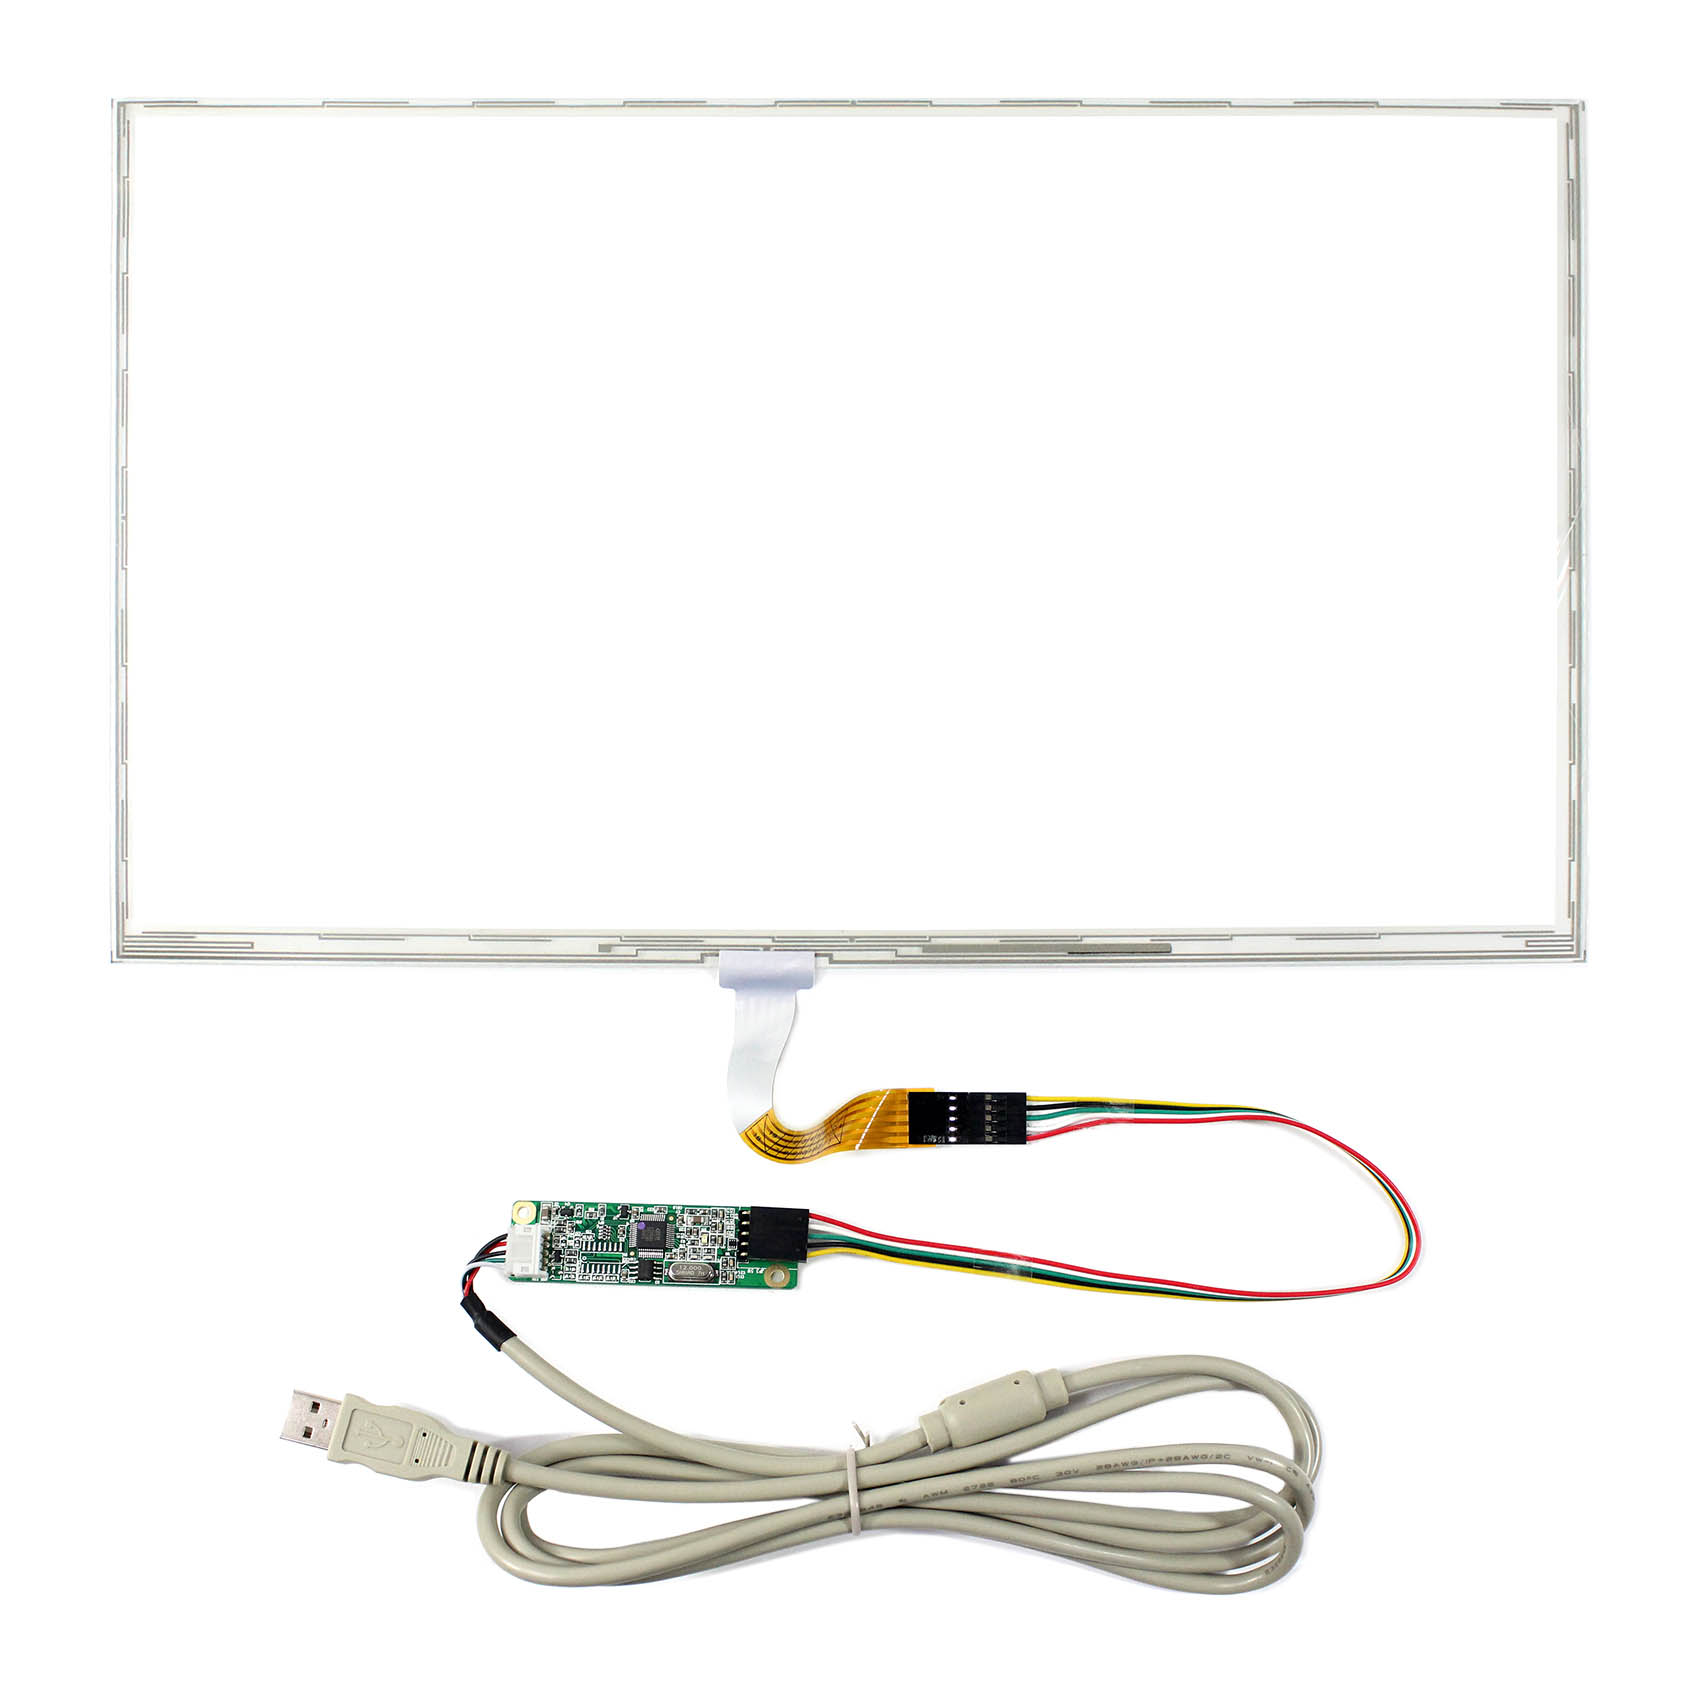 15.6inch  5pin FPC connector 5-Wire Resistive Touch Panel Dimension Size 359mmx209mm Reissitve Touch Screen15.6inch  5pin FPC connector 5-Wire Resistive Touch Panel Dimension Size 359mmx209mm Reissitve Touch Screen